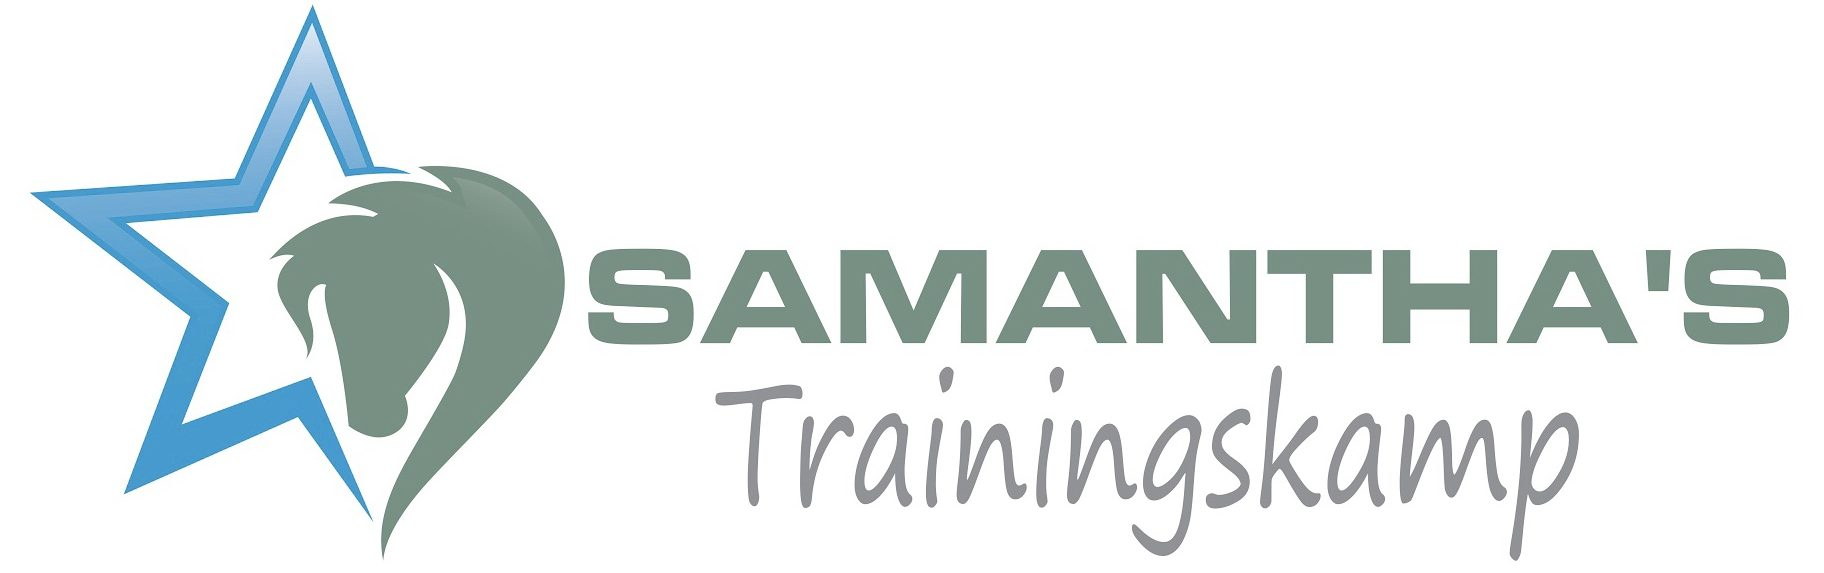 Samantha's Trainingskamp